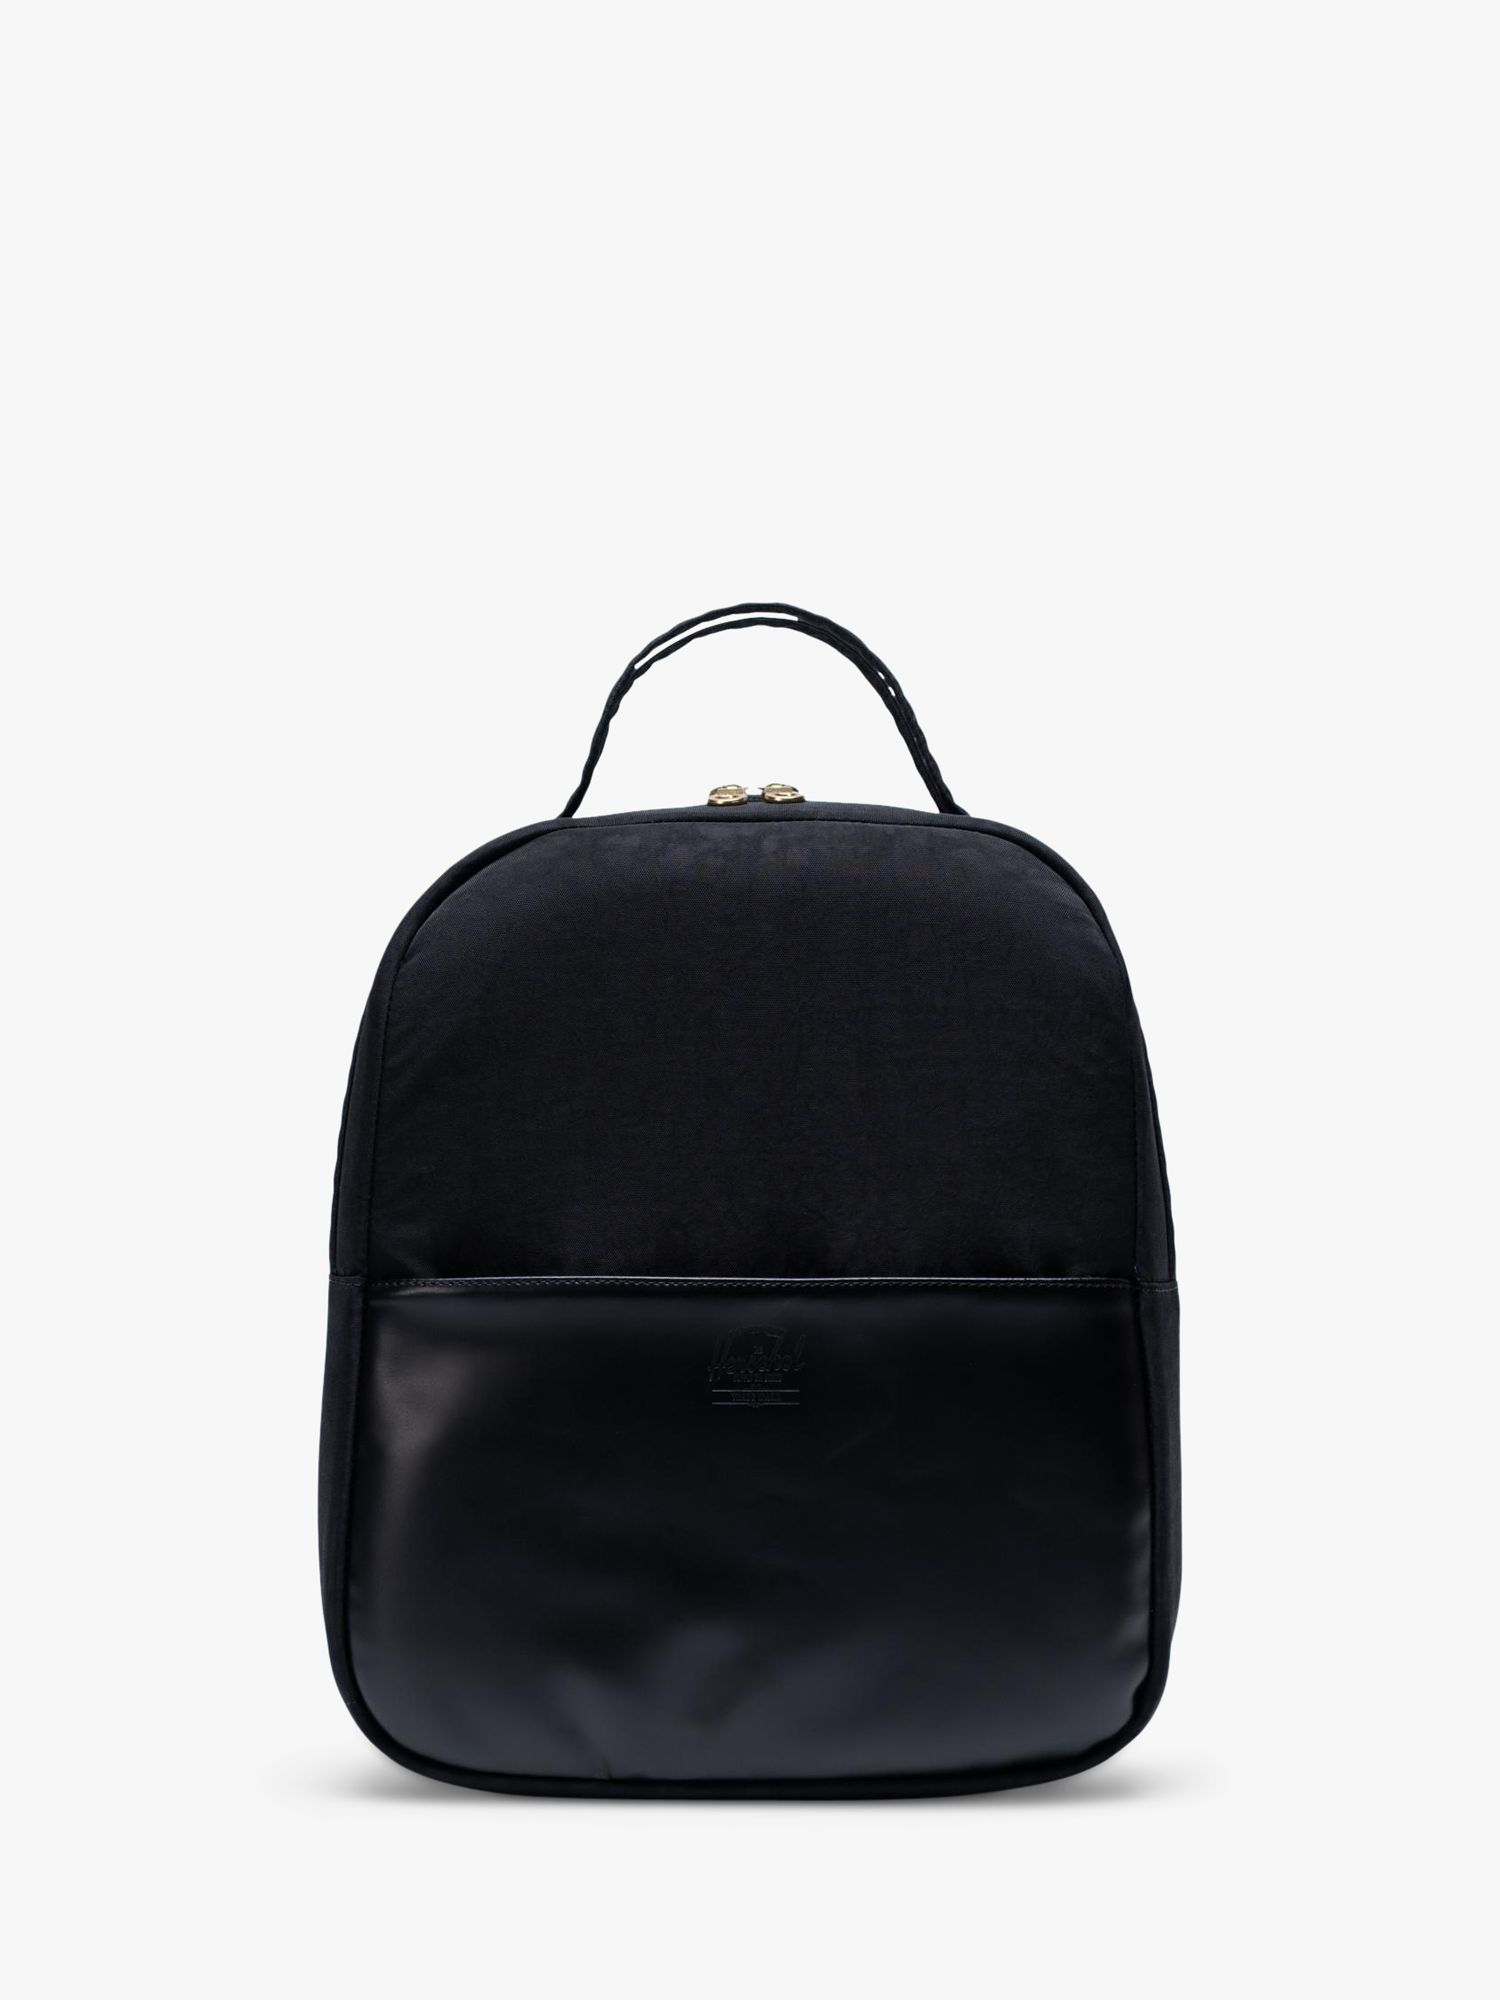 Herschel Supply Co. Herschel Supply Co. Orion Leather Capsule Backpack, Black